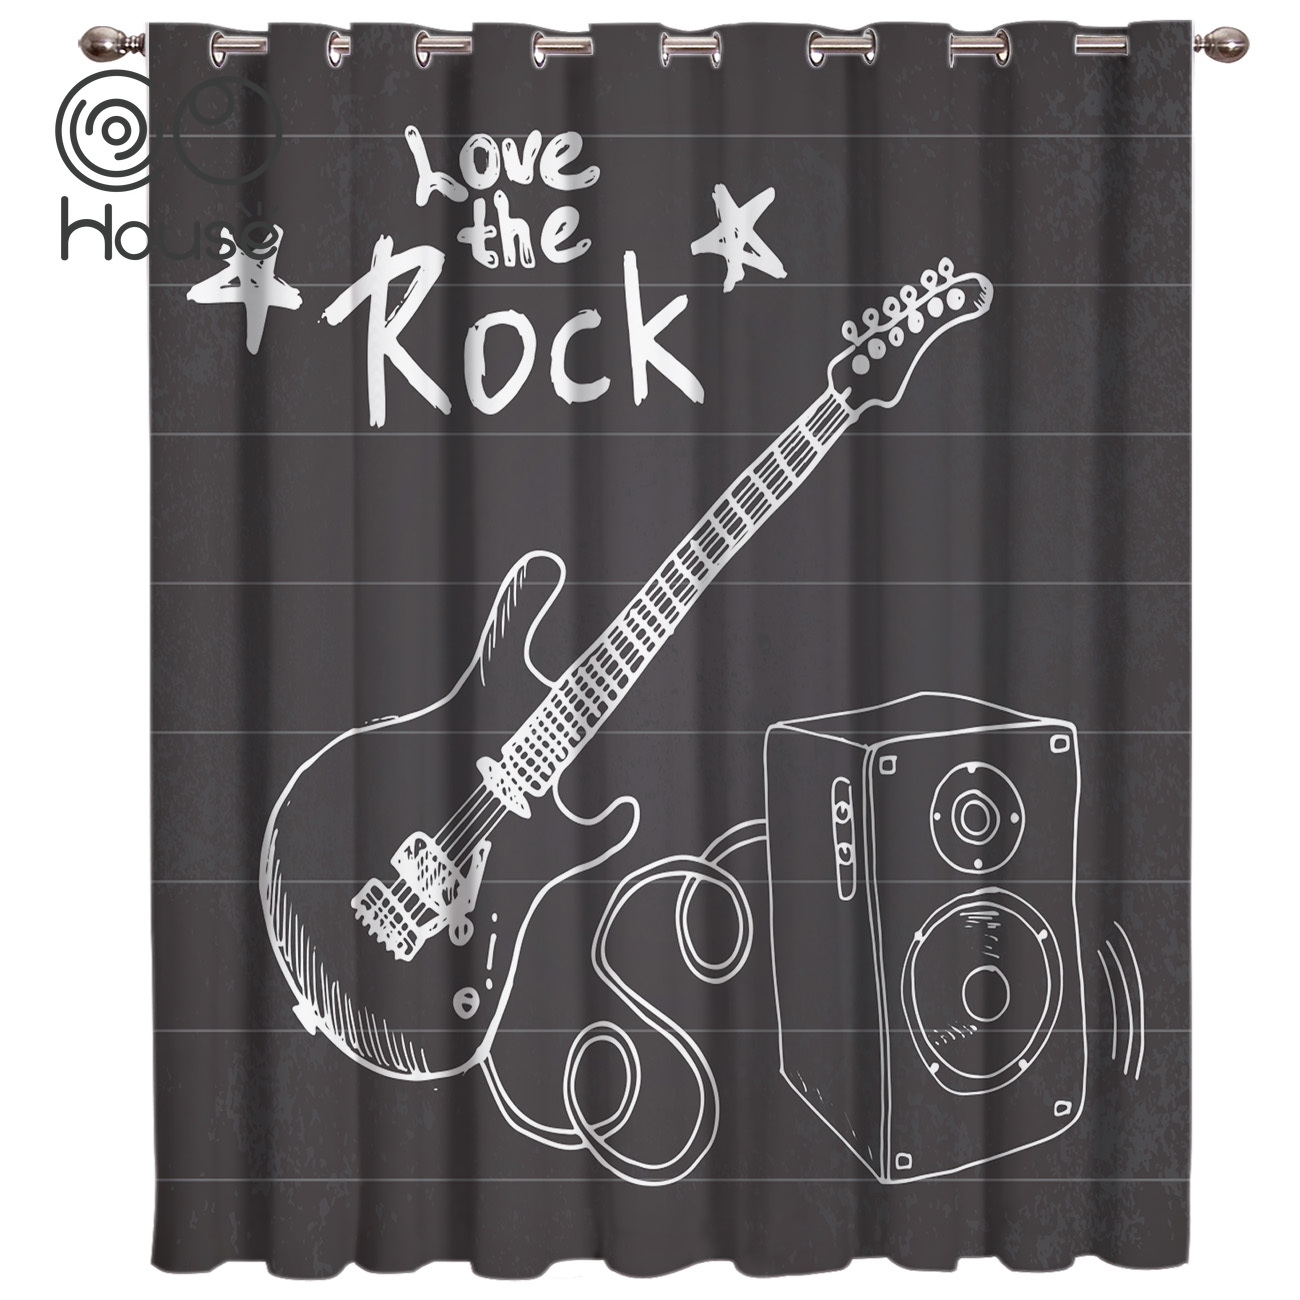 COCOHouse Blackboard Rock Music Curtain Lights Living Room Blackout Bathroom Bedroom Indoor Fabric Decor Kids Outdoor Curtains